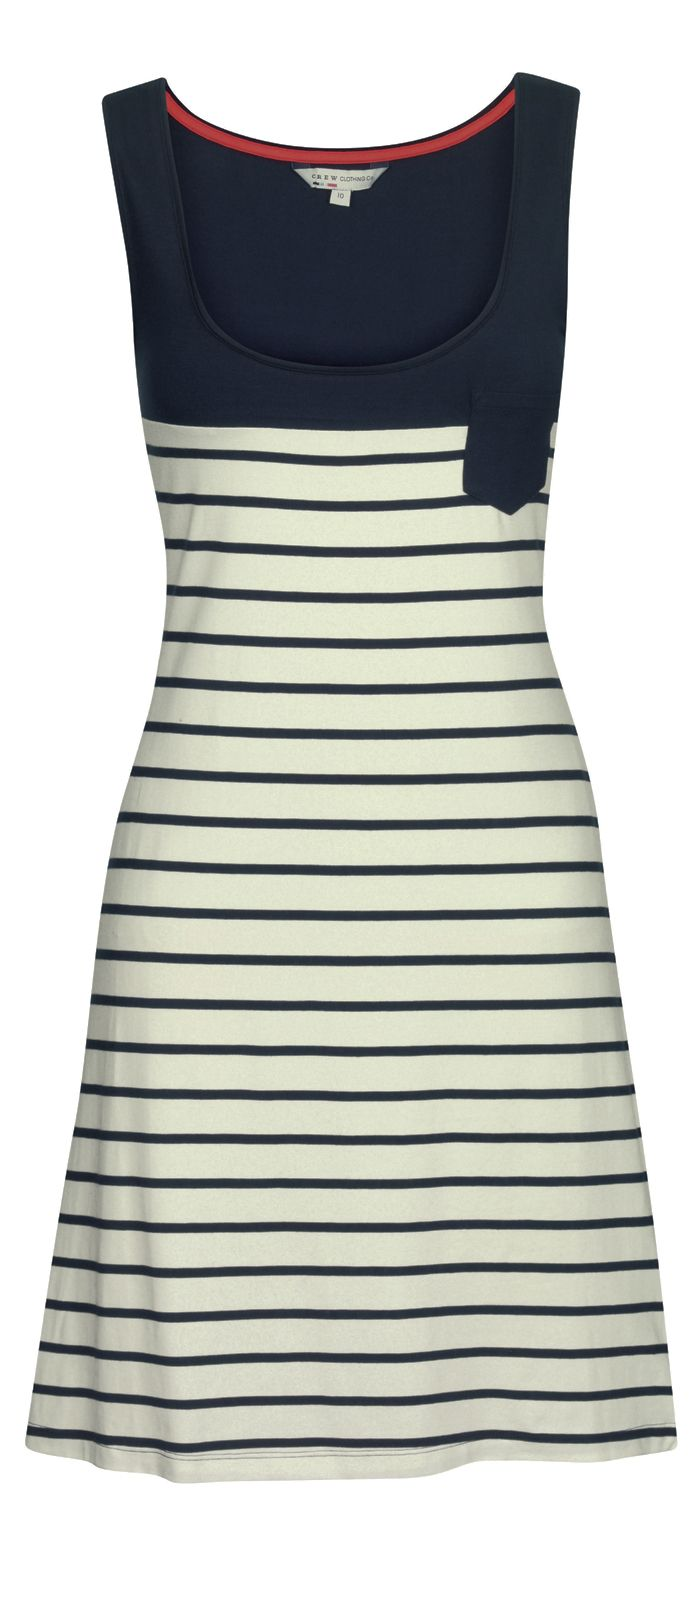 Read about Cruise Wear (crew clothing prshots) at http://boomerinas.com/2011/12/daytime-cruise-wear-for-women-with-style/